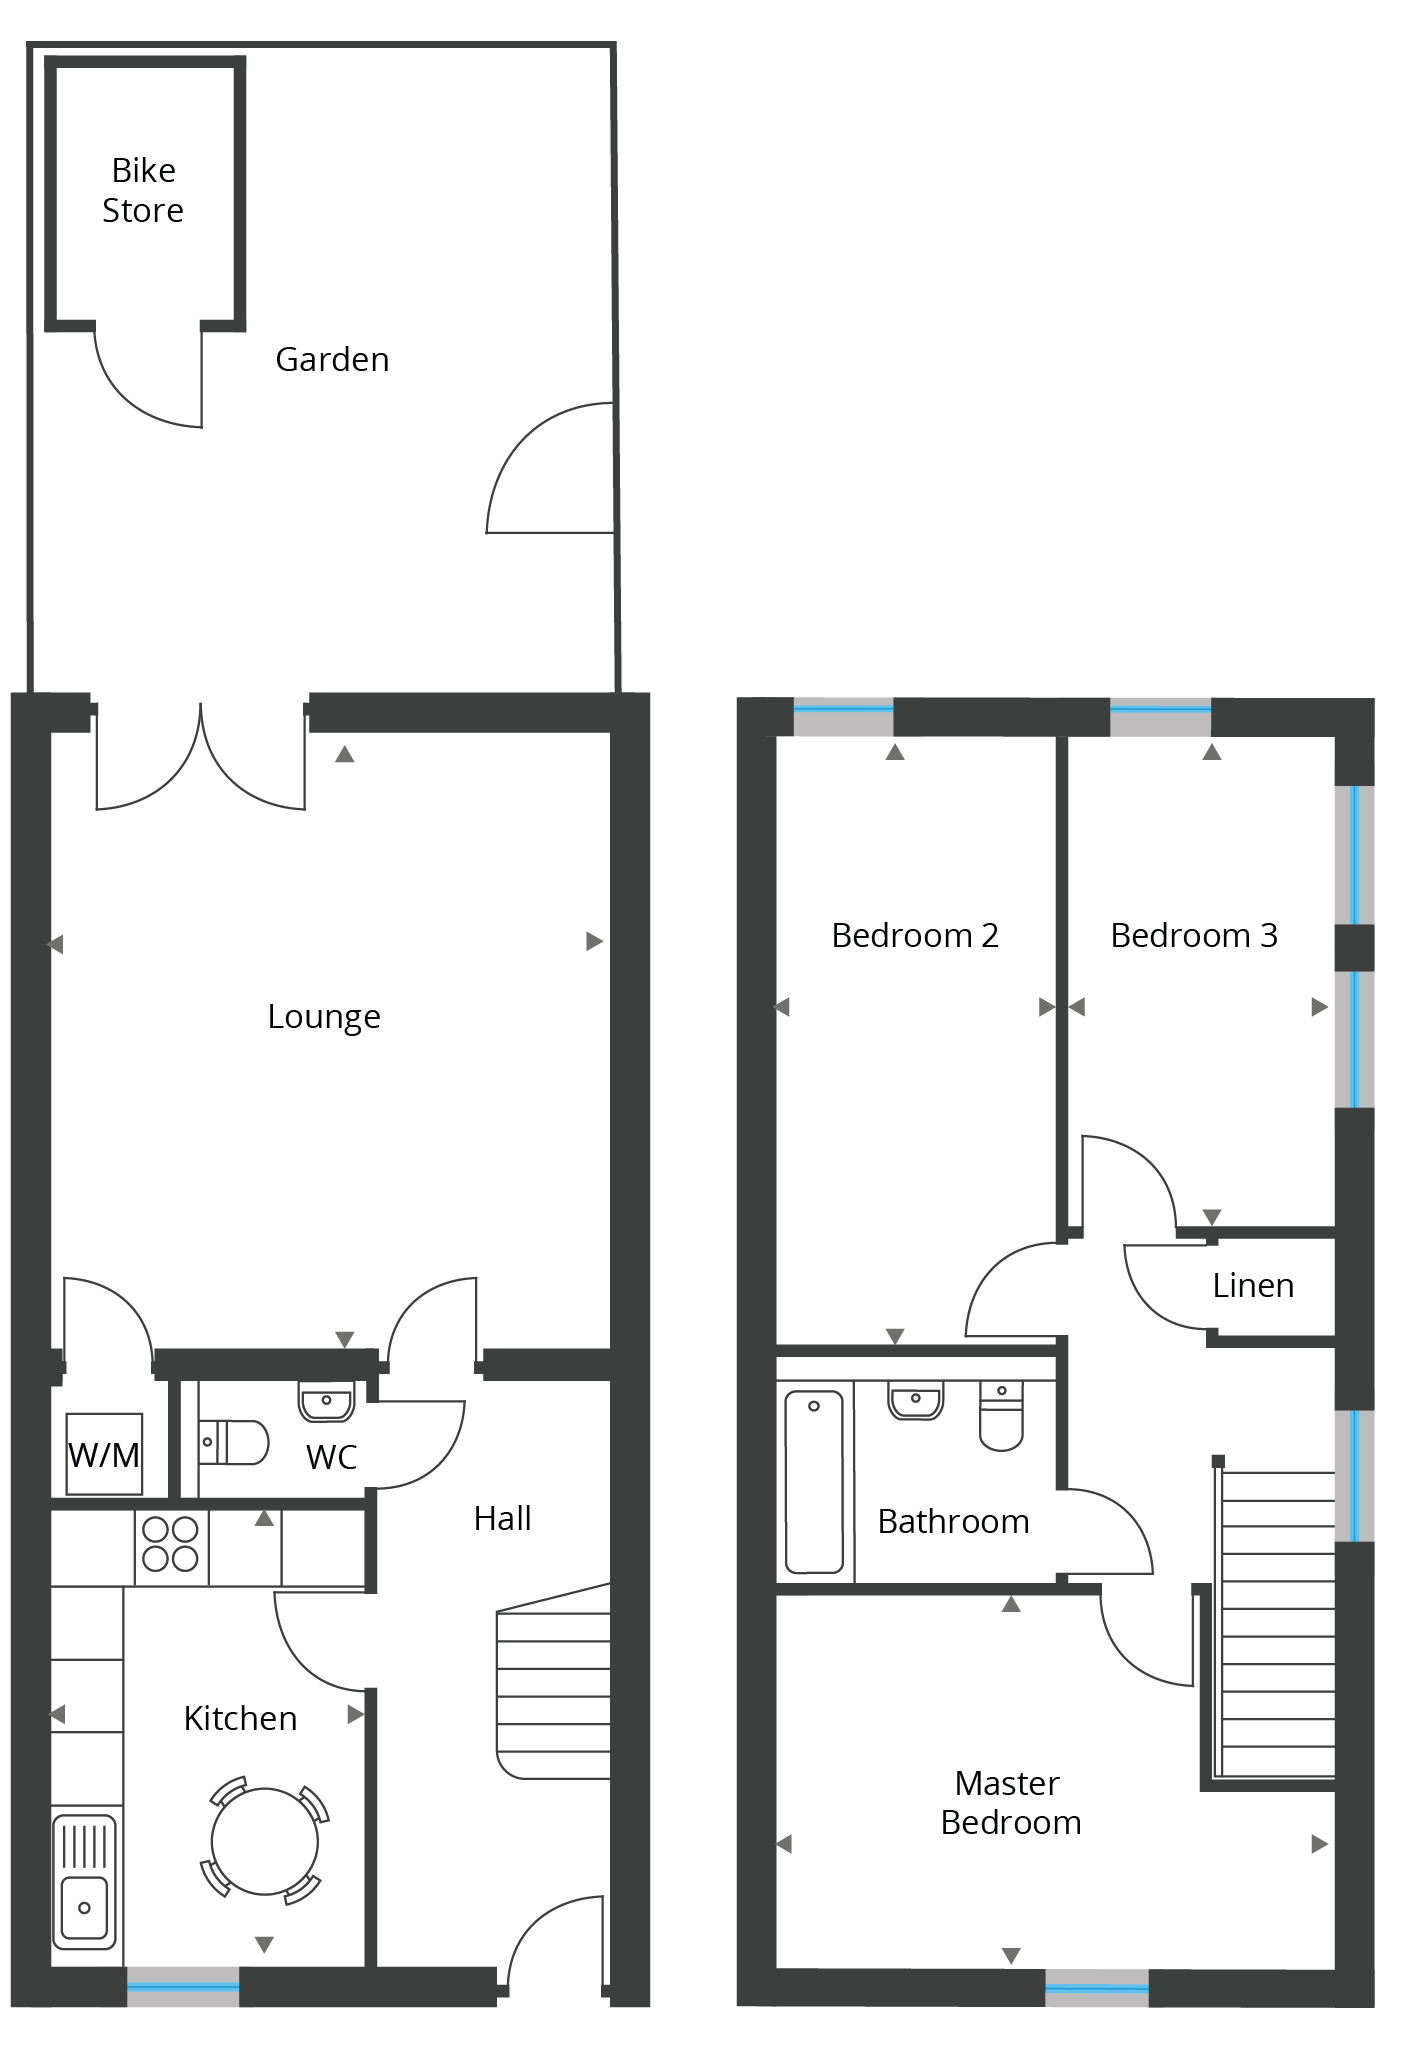 Floorplan for Unit 13